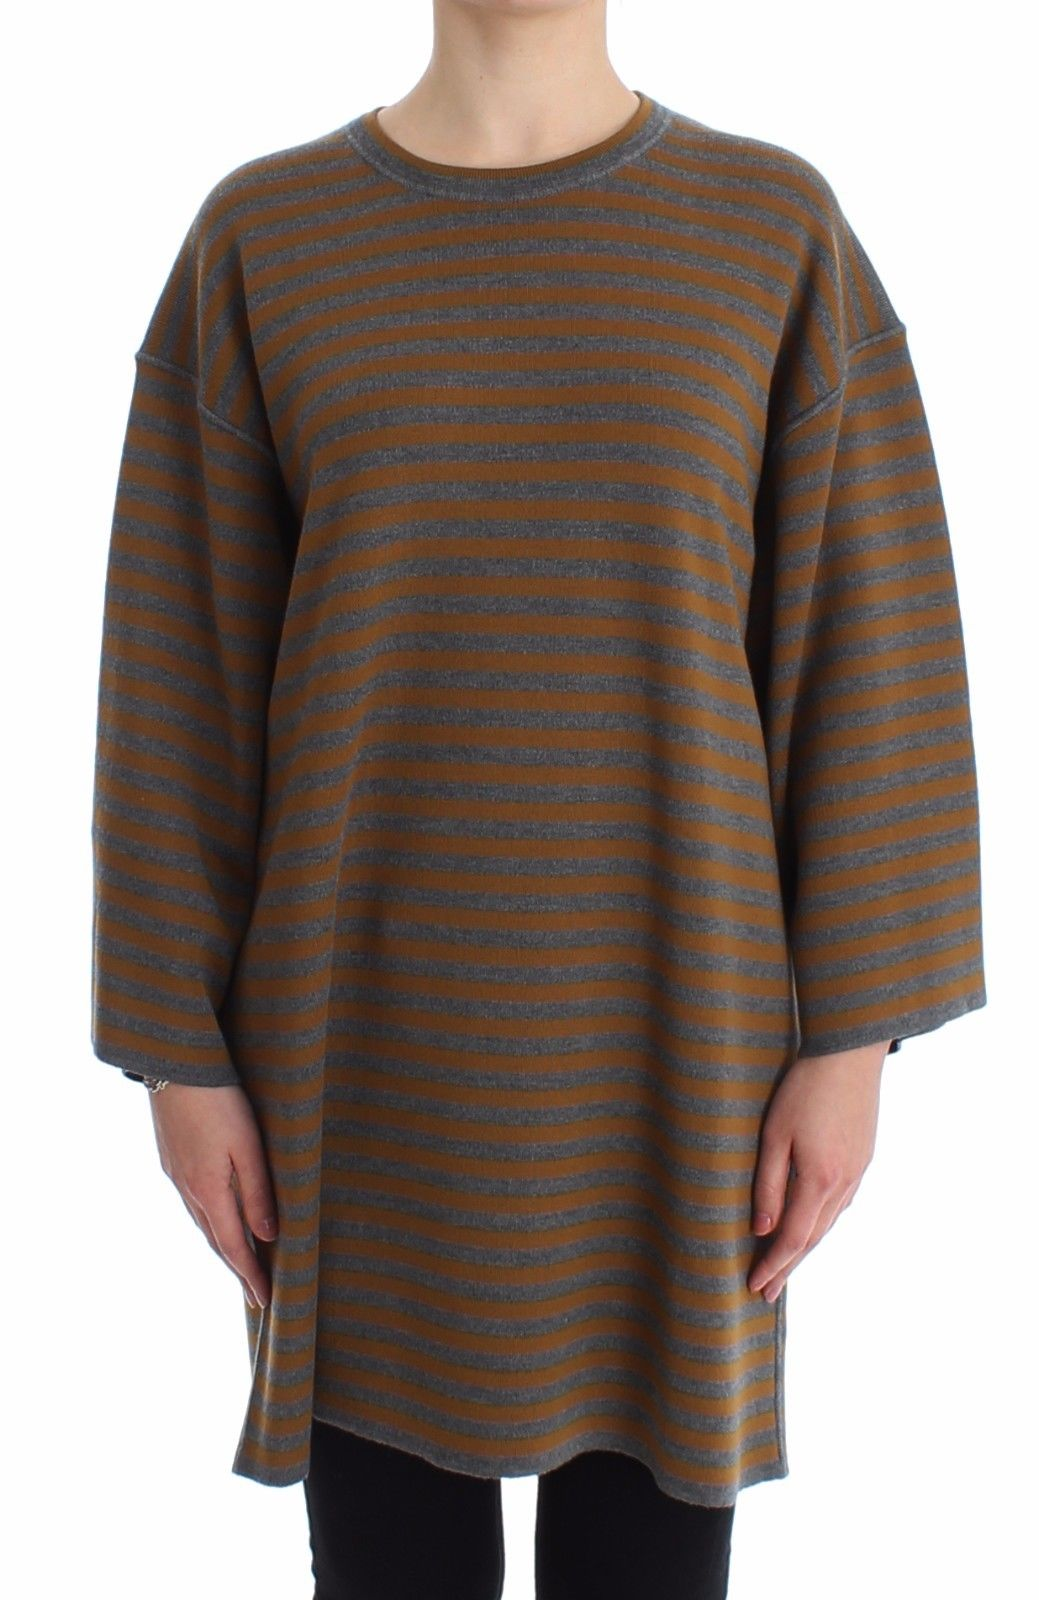 Image of Dolce & Gabbana Oversized Gray Yellow Striped Sweater Top